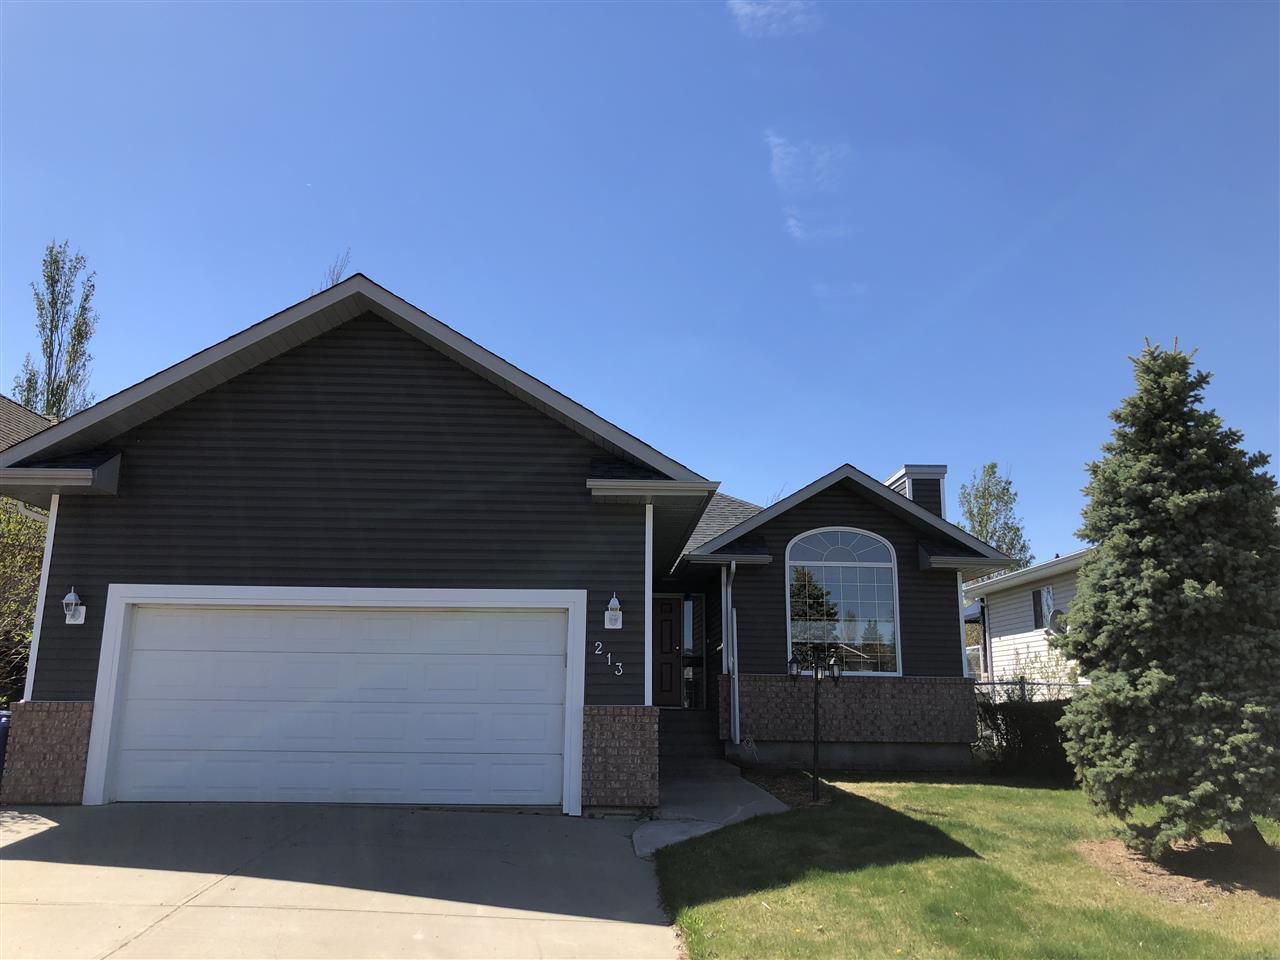 Main Photo: 213 Parkview Drive: Wetaskiwin House for sale : MLS®# E4145025